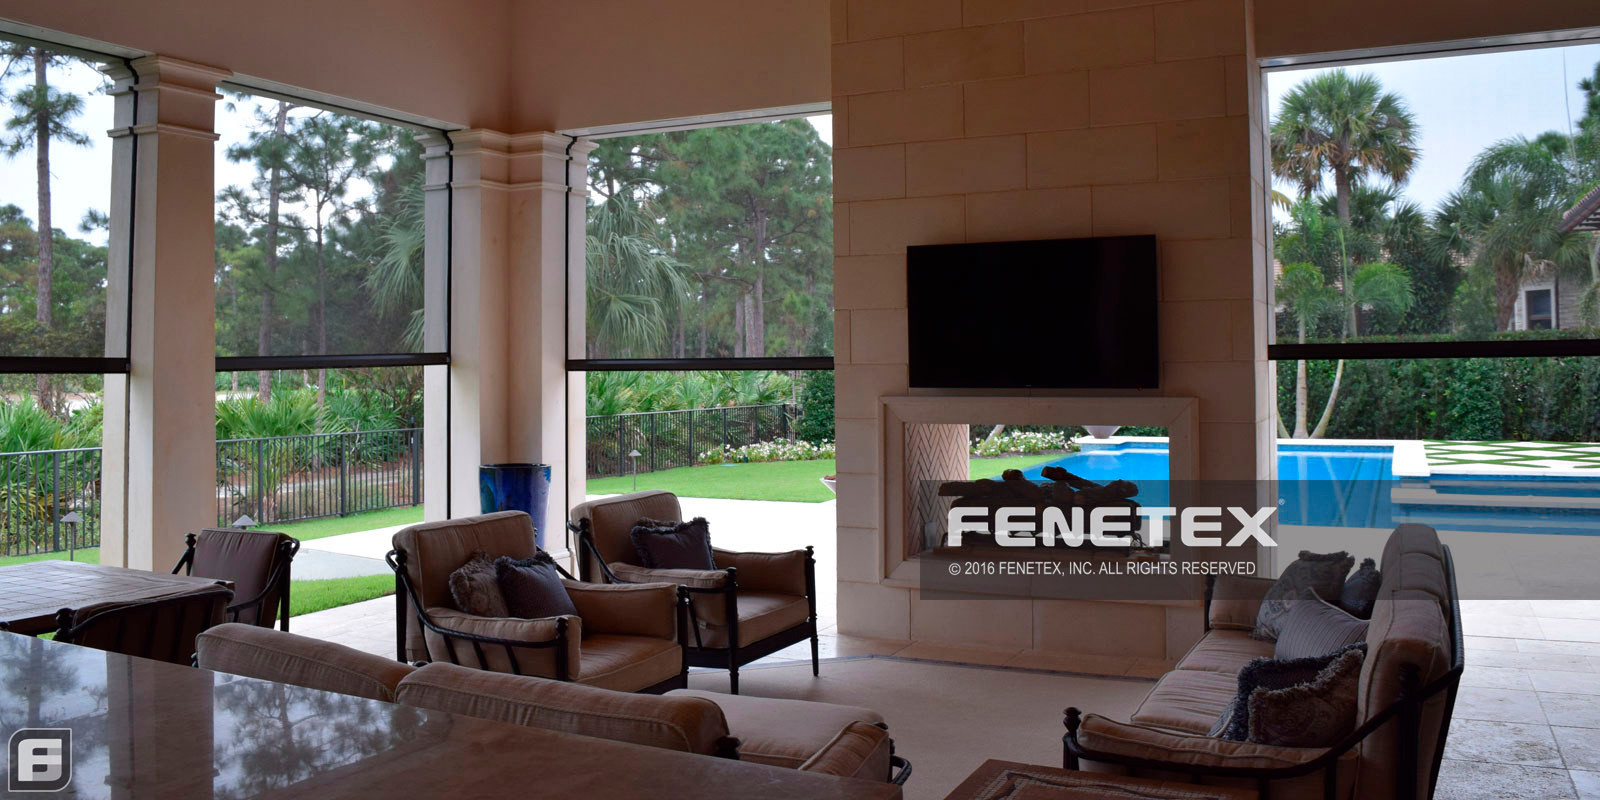 Fenetex insect screen